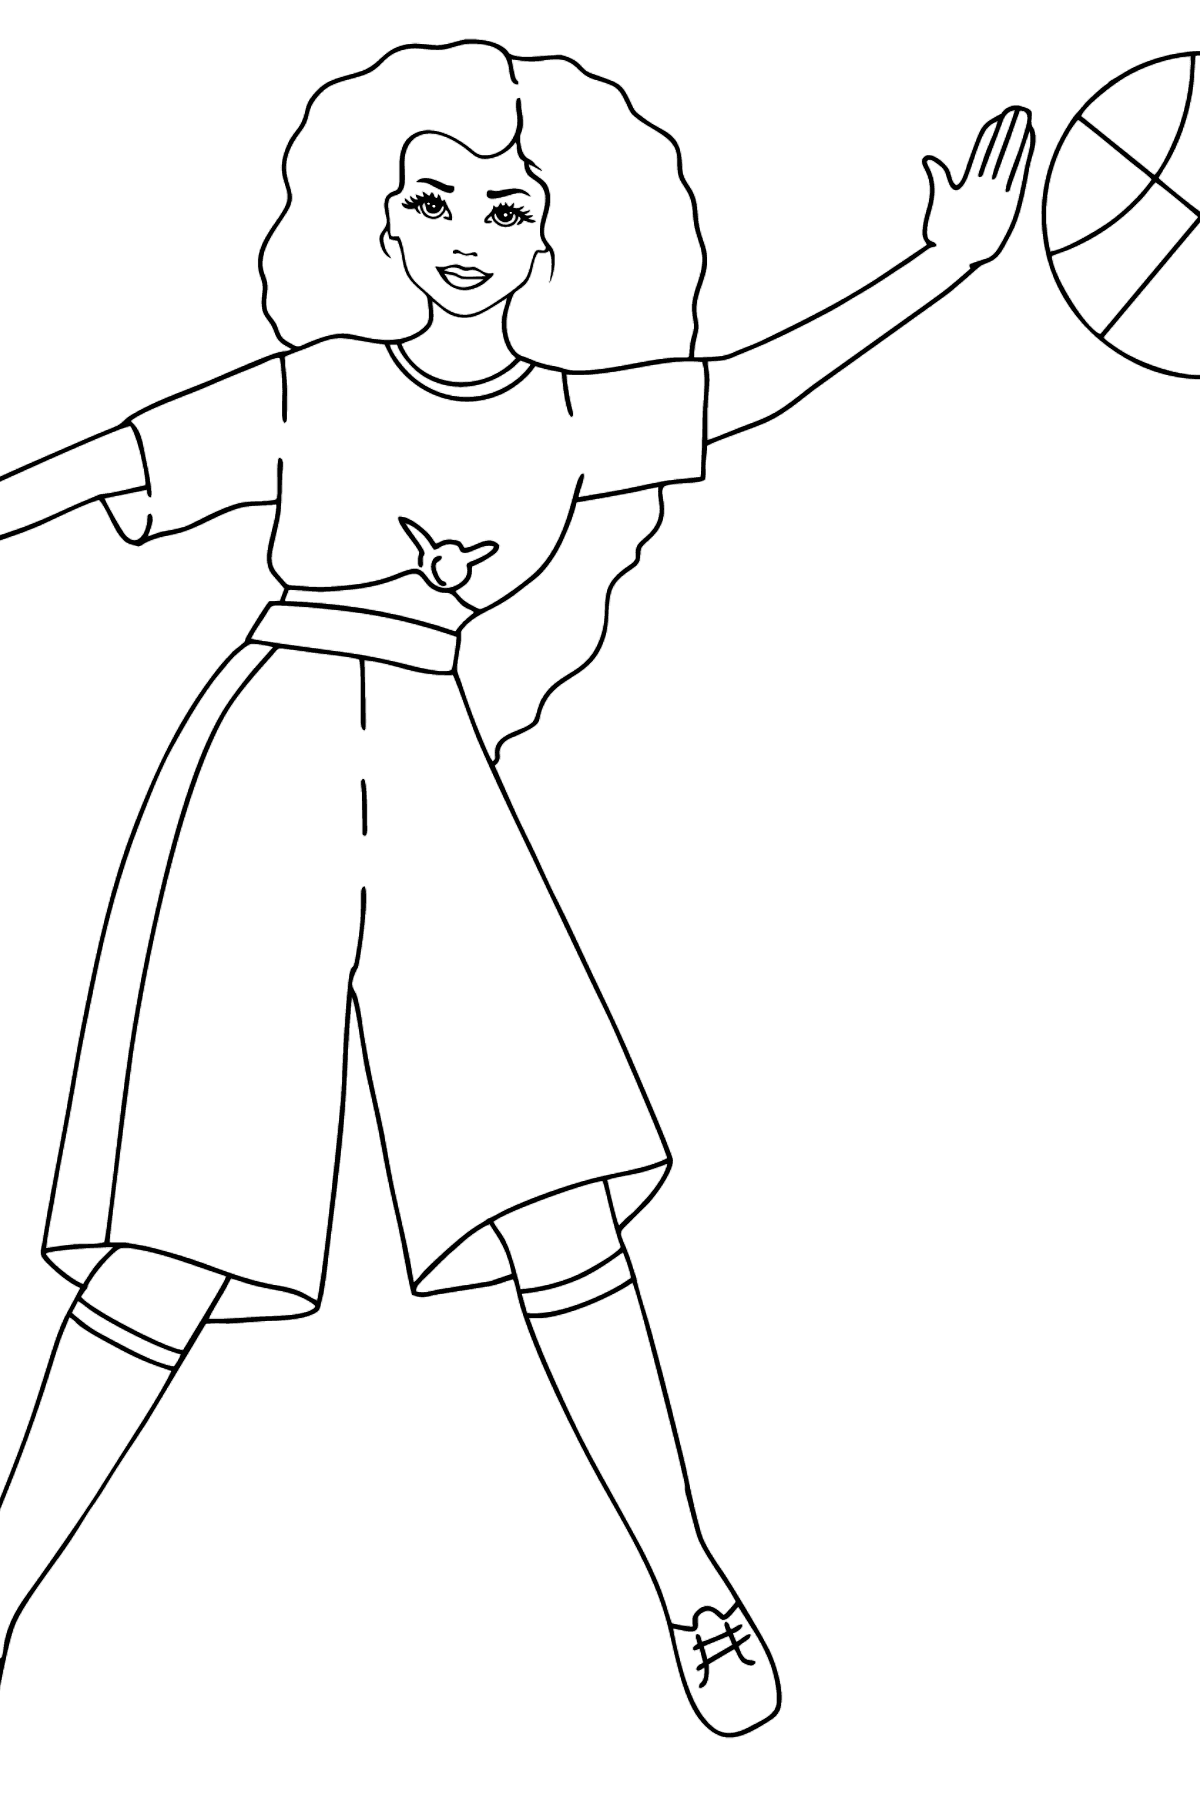 Barbie Doll Playing Volleyball coloring page - Coloring Pages for Kids